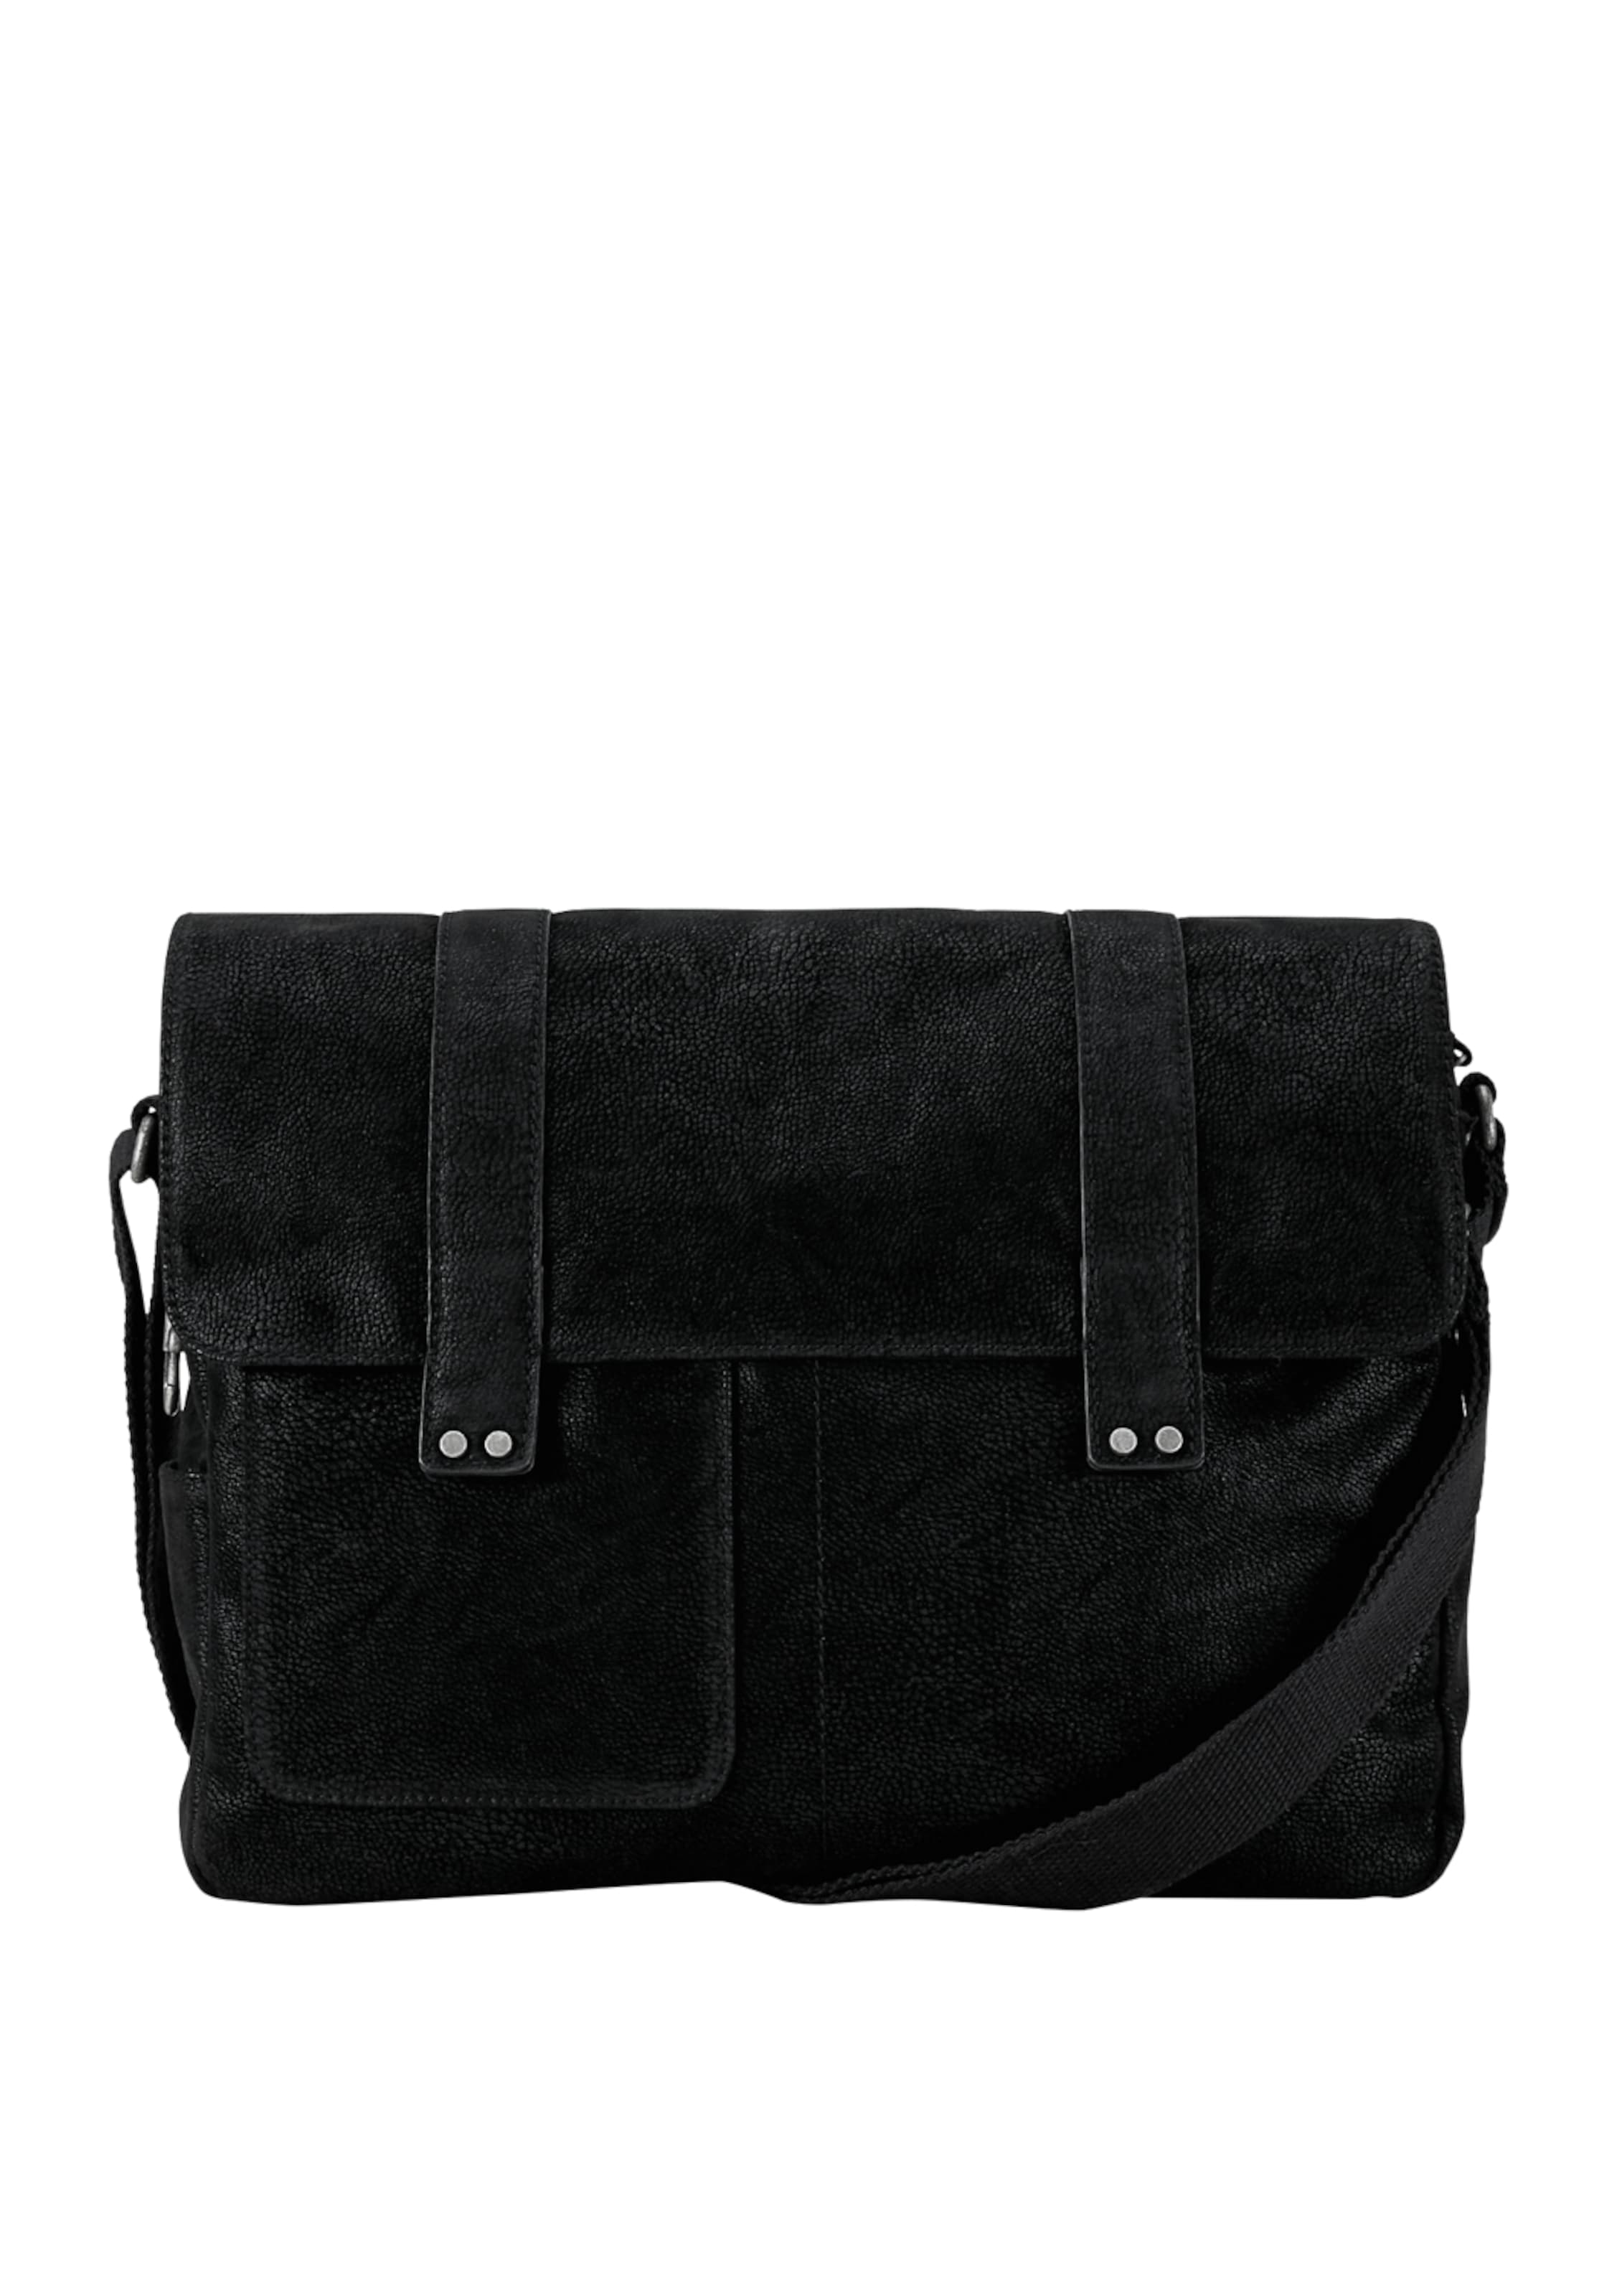 Red oliver Bag In Veloursleder optik Schwarz Label S Messenger oexCBrd